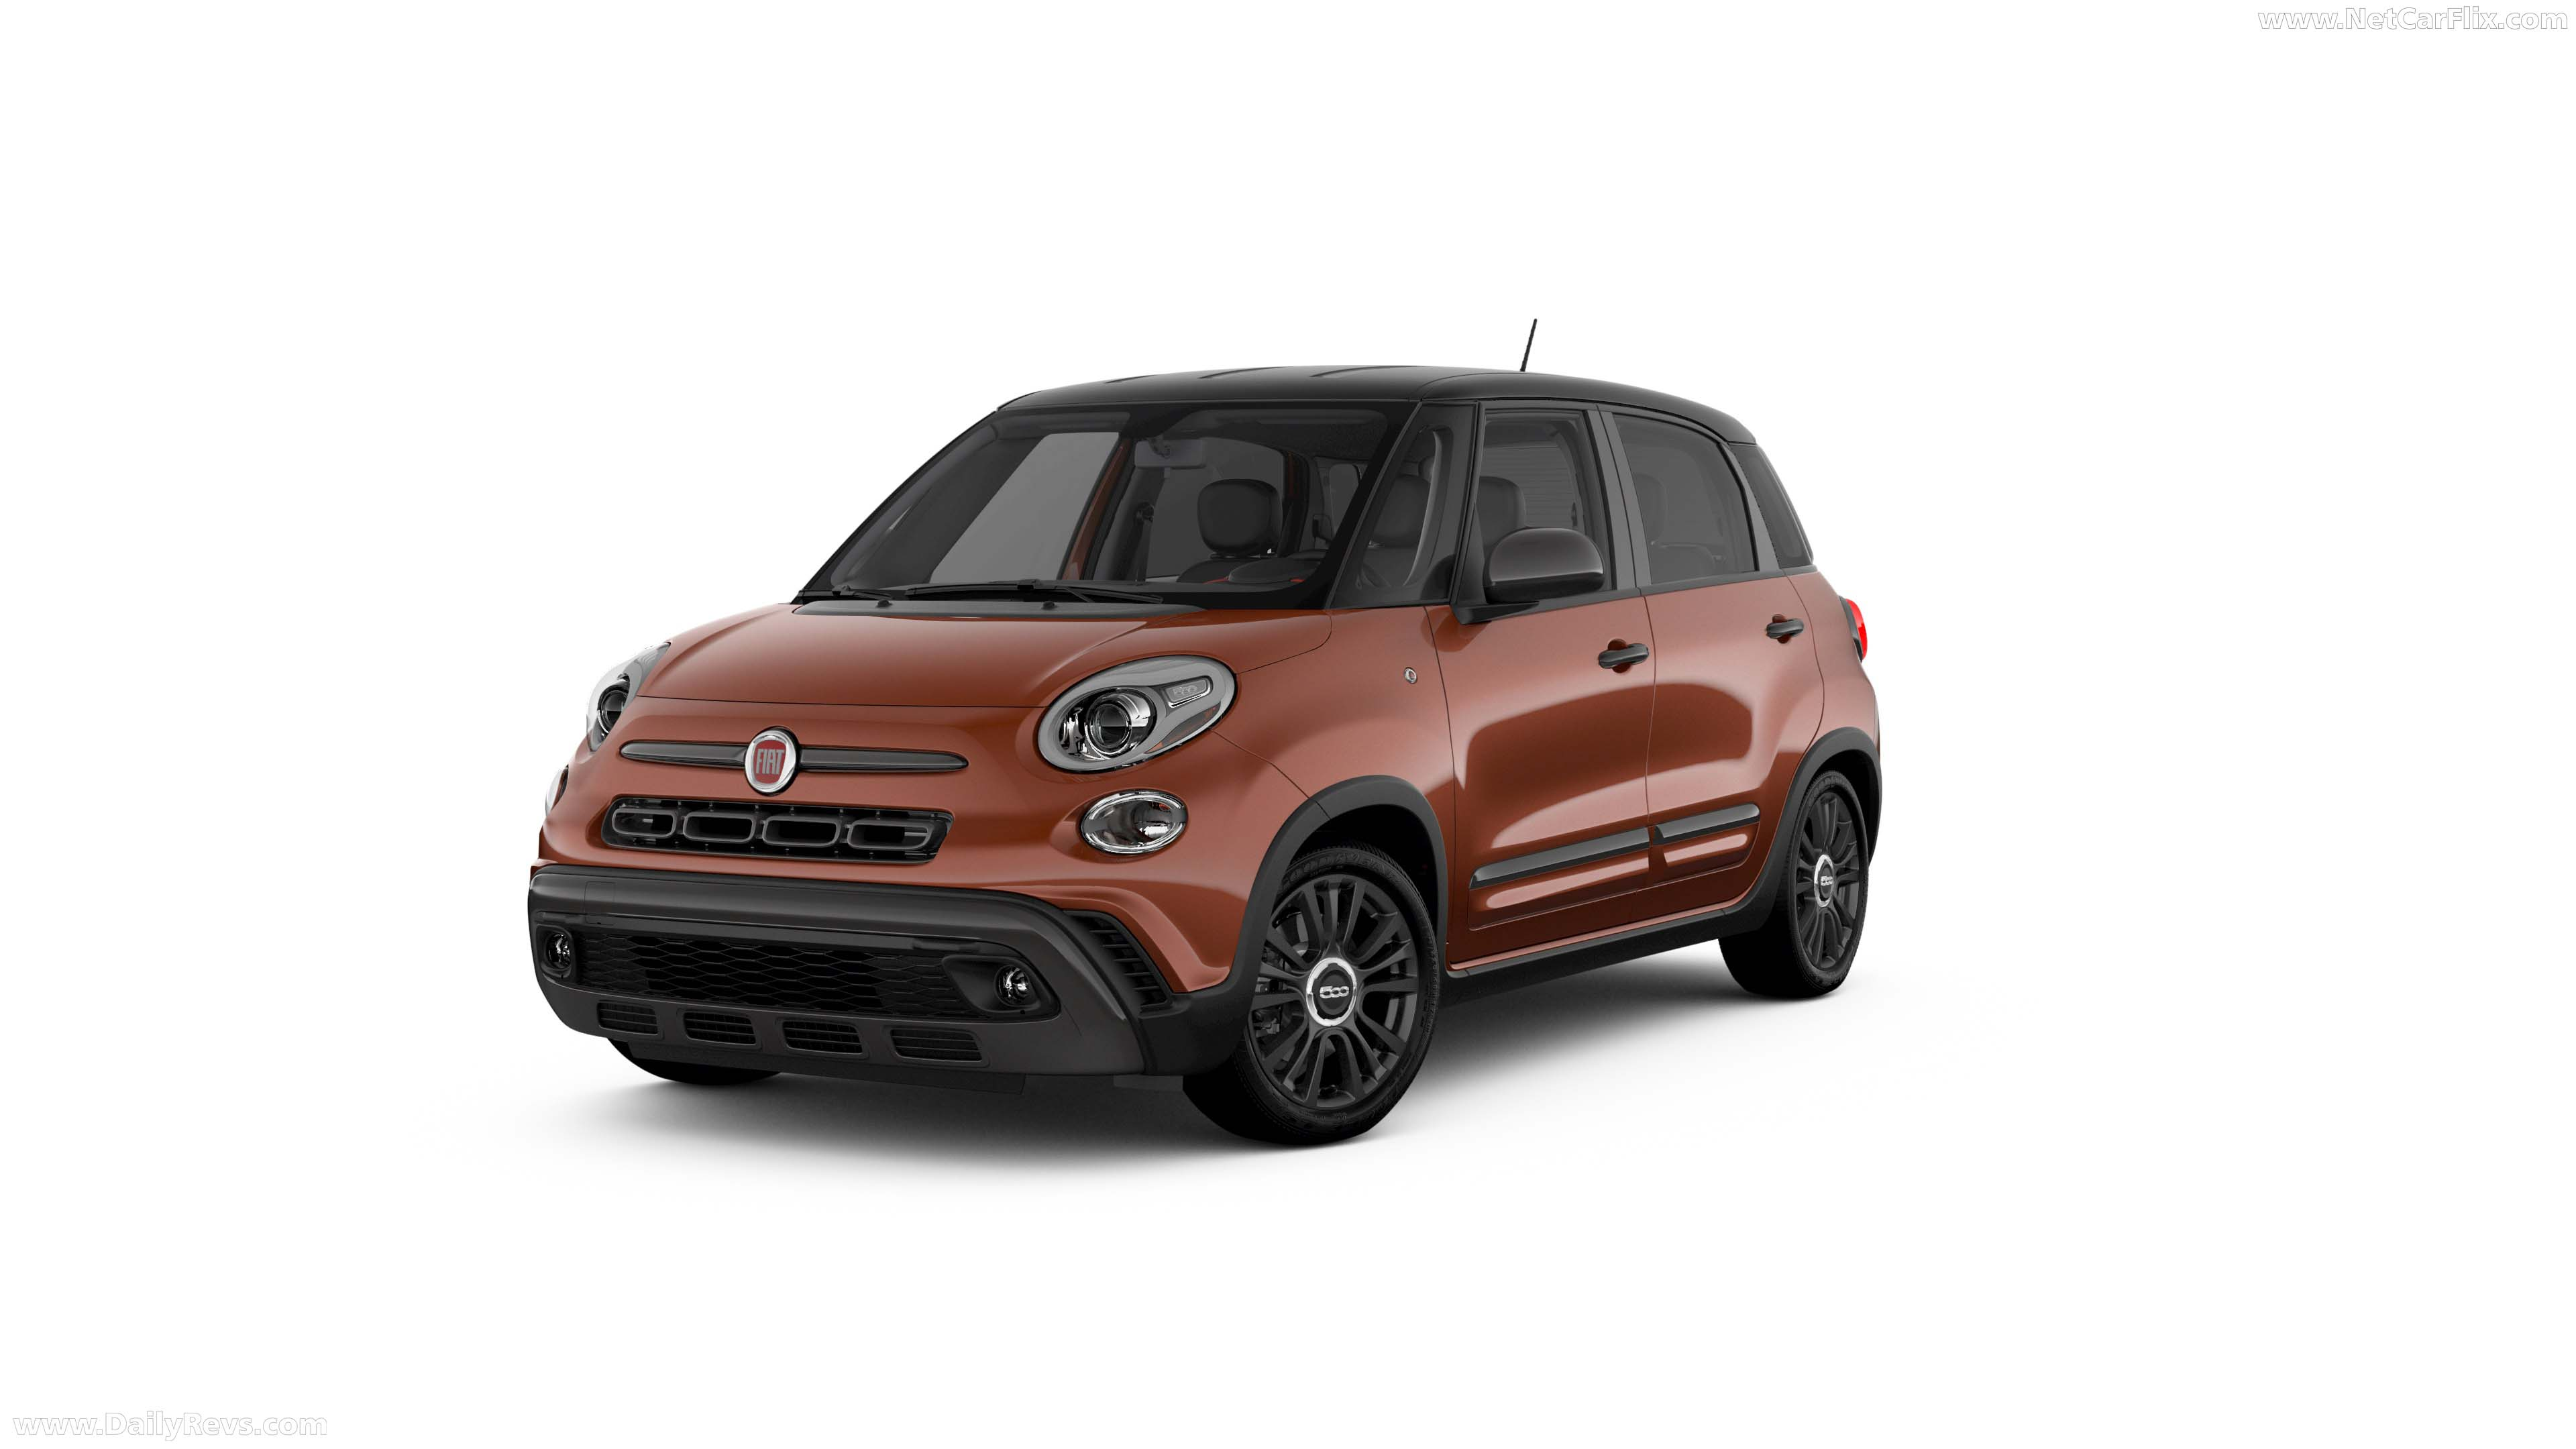 2019 Fiat 500L - HD images, Specs, information and Videos ...